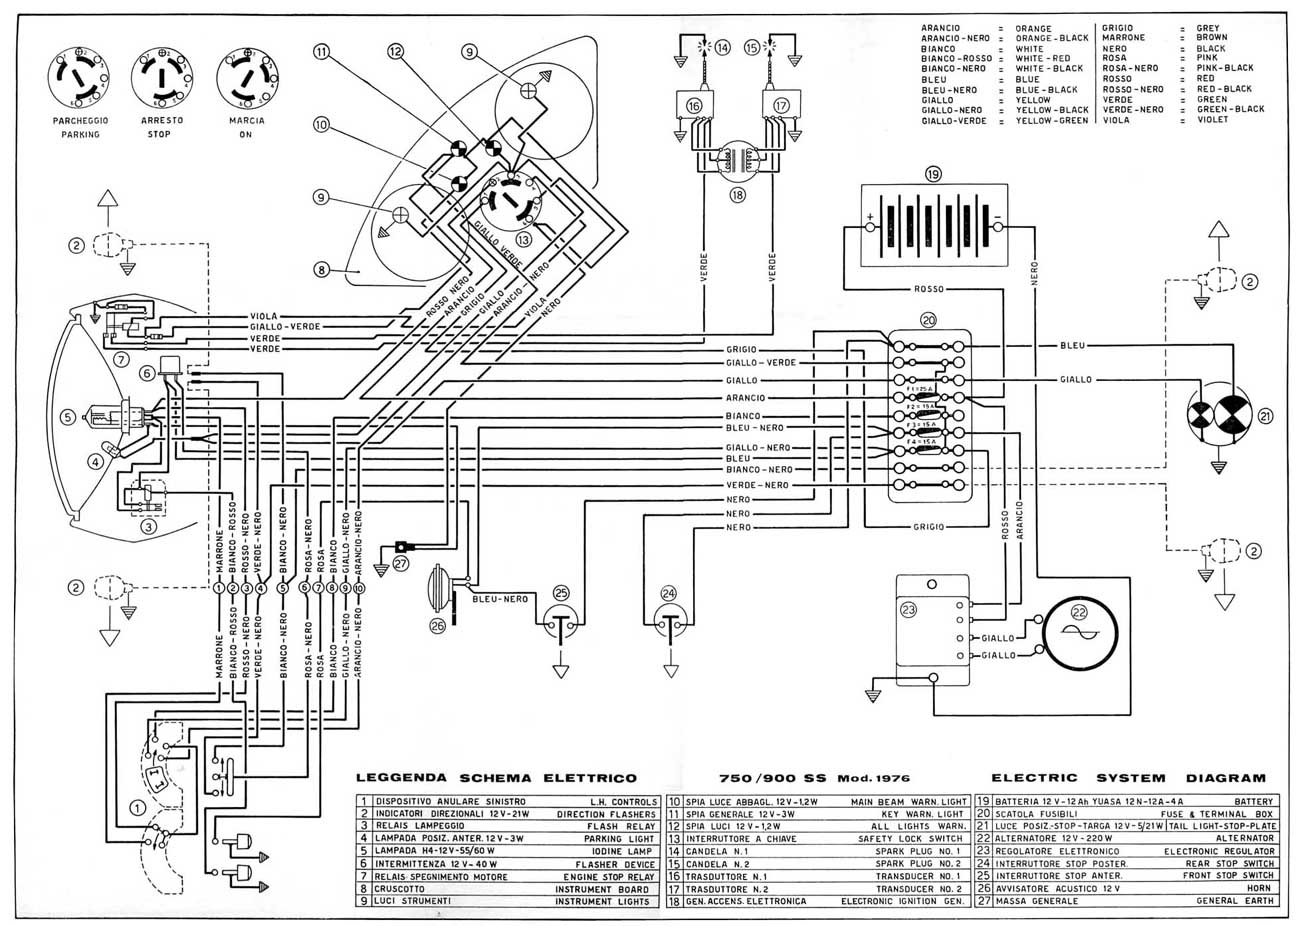 1975 bmw 2002 wiring diagram with Ducatimeccanica on Build A V8 Beetle Bug further Wiringdiagrams cycleterminal in addition Showthread additionally 93 Sable Ignition Switch Wiring Diagram moreover Bmw C1 Wiring Diagram.